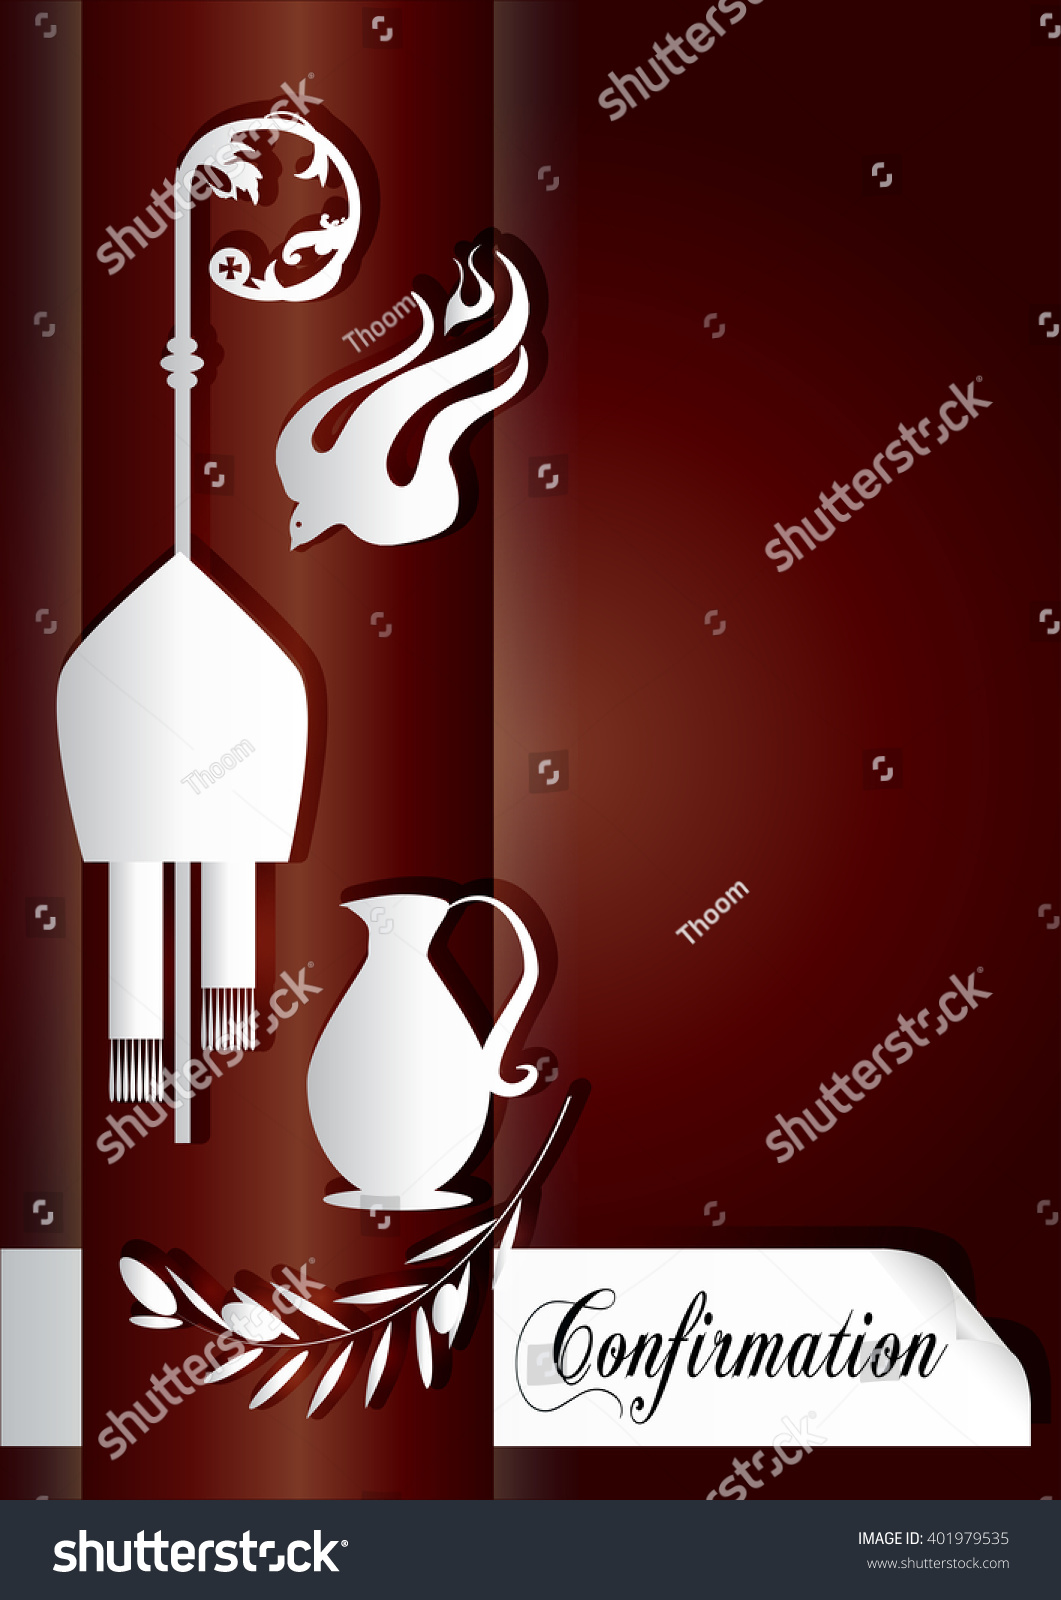 Sacrament confirmation symbolic vector drawing illustration stock sacrament of confirmation symbolic vector drawing illustration with the holy olive oil and olive biocorpaavc Image collections